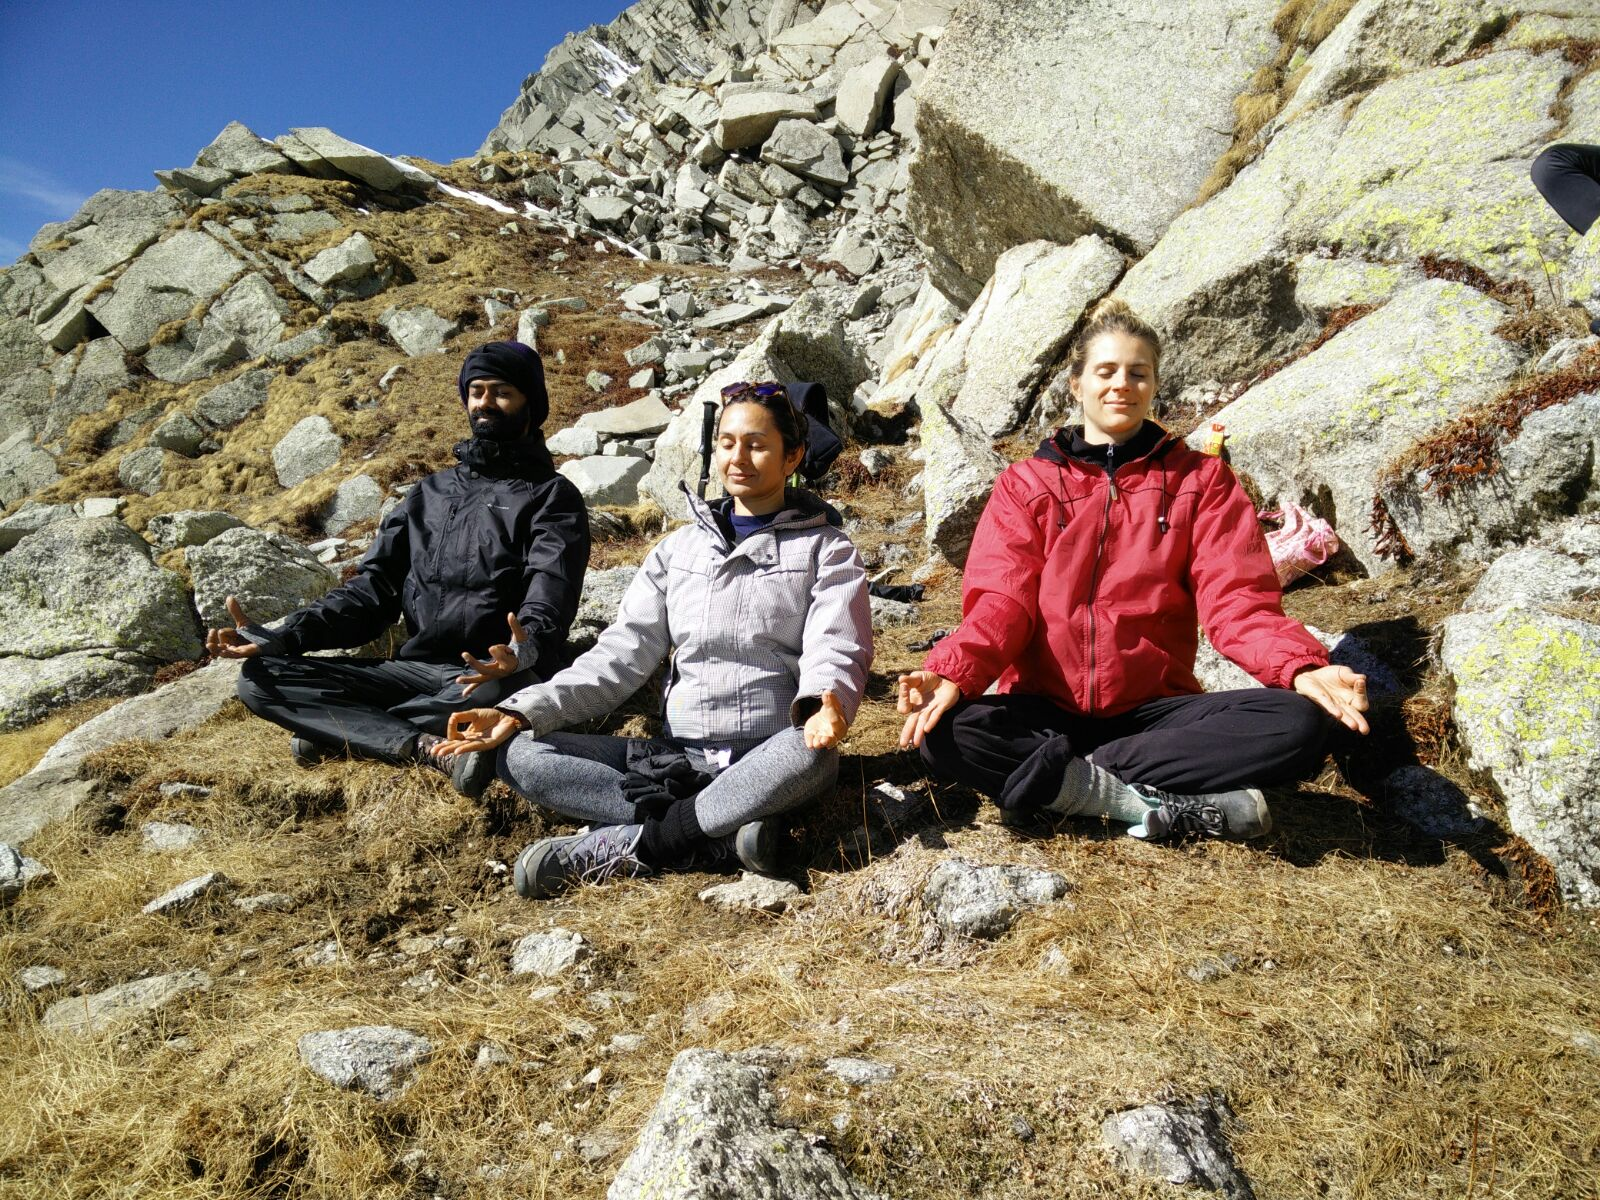 yoga. total yoga, what is yoga?, international yoga day, world yoga day, yogaday, India yoga, yoga in the himalayas, yomasteladakh, ladakh yoga, darjeeling yoga, yomaste yoga retreat, yogis, manish pole, neetu singh